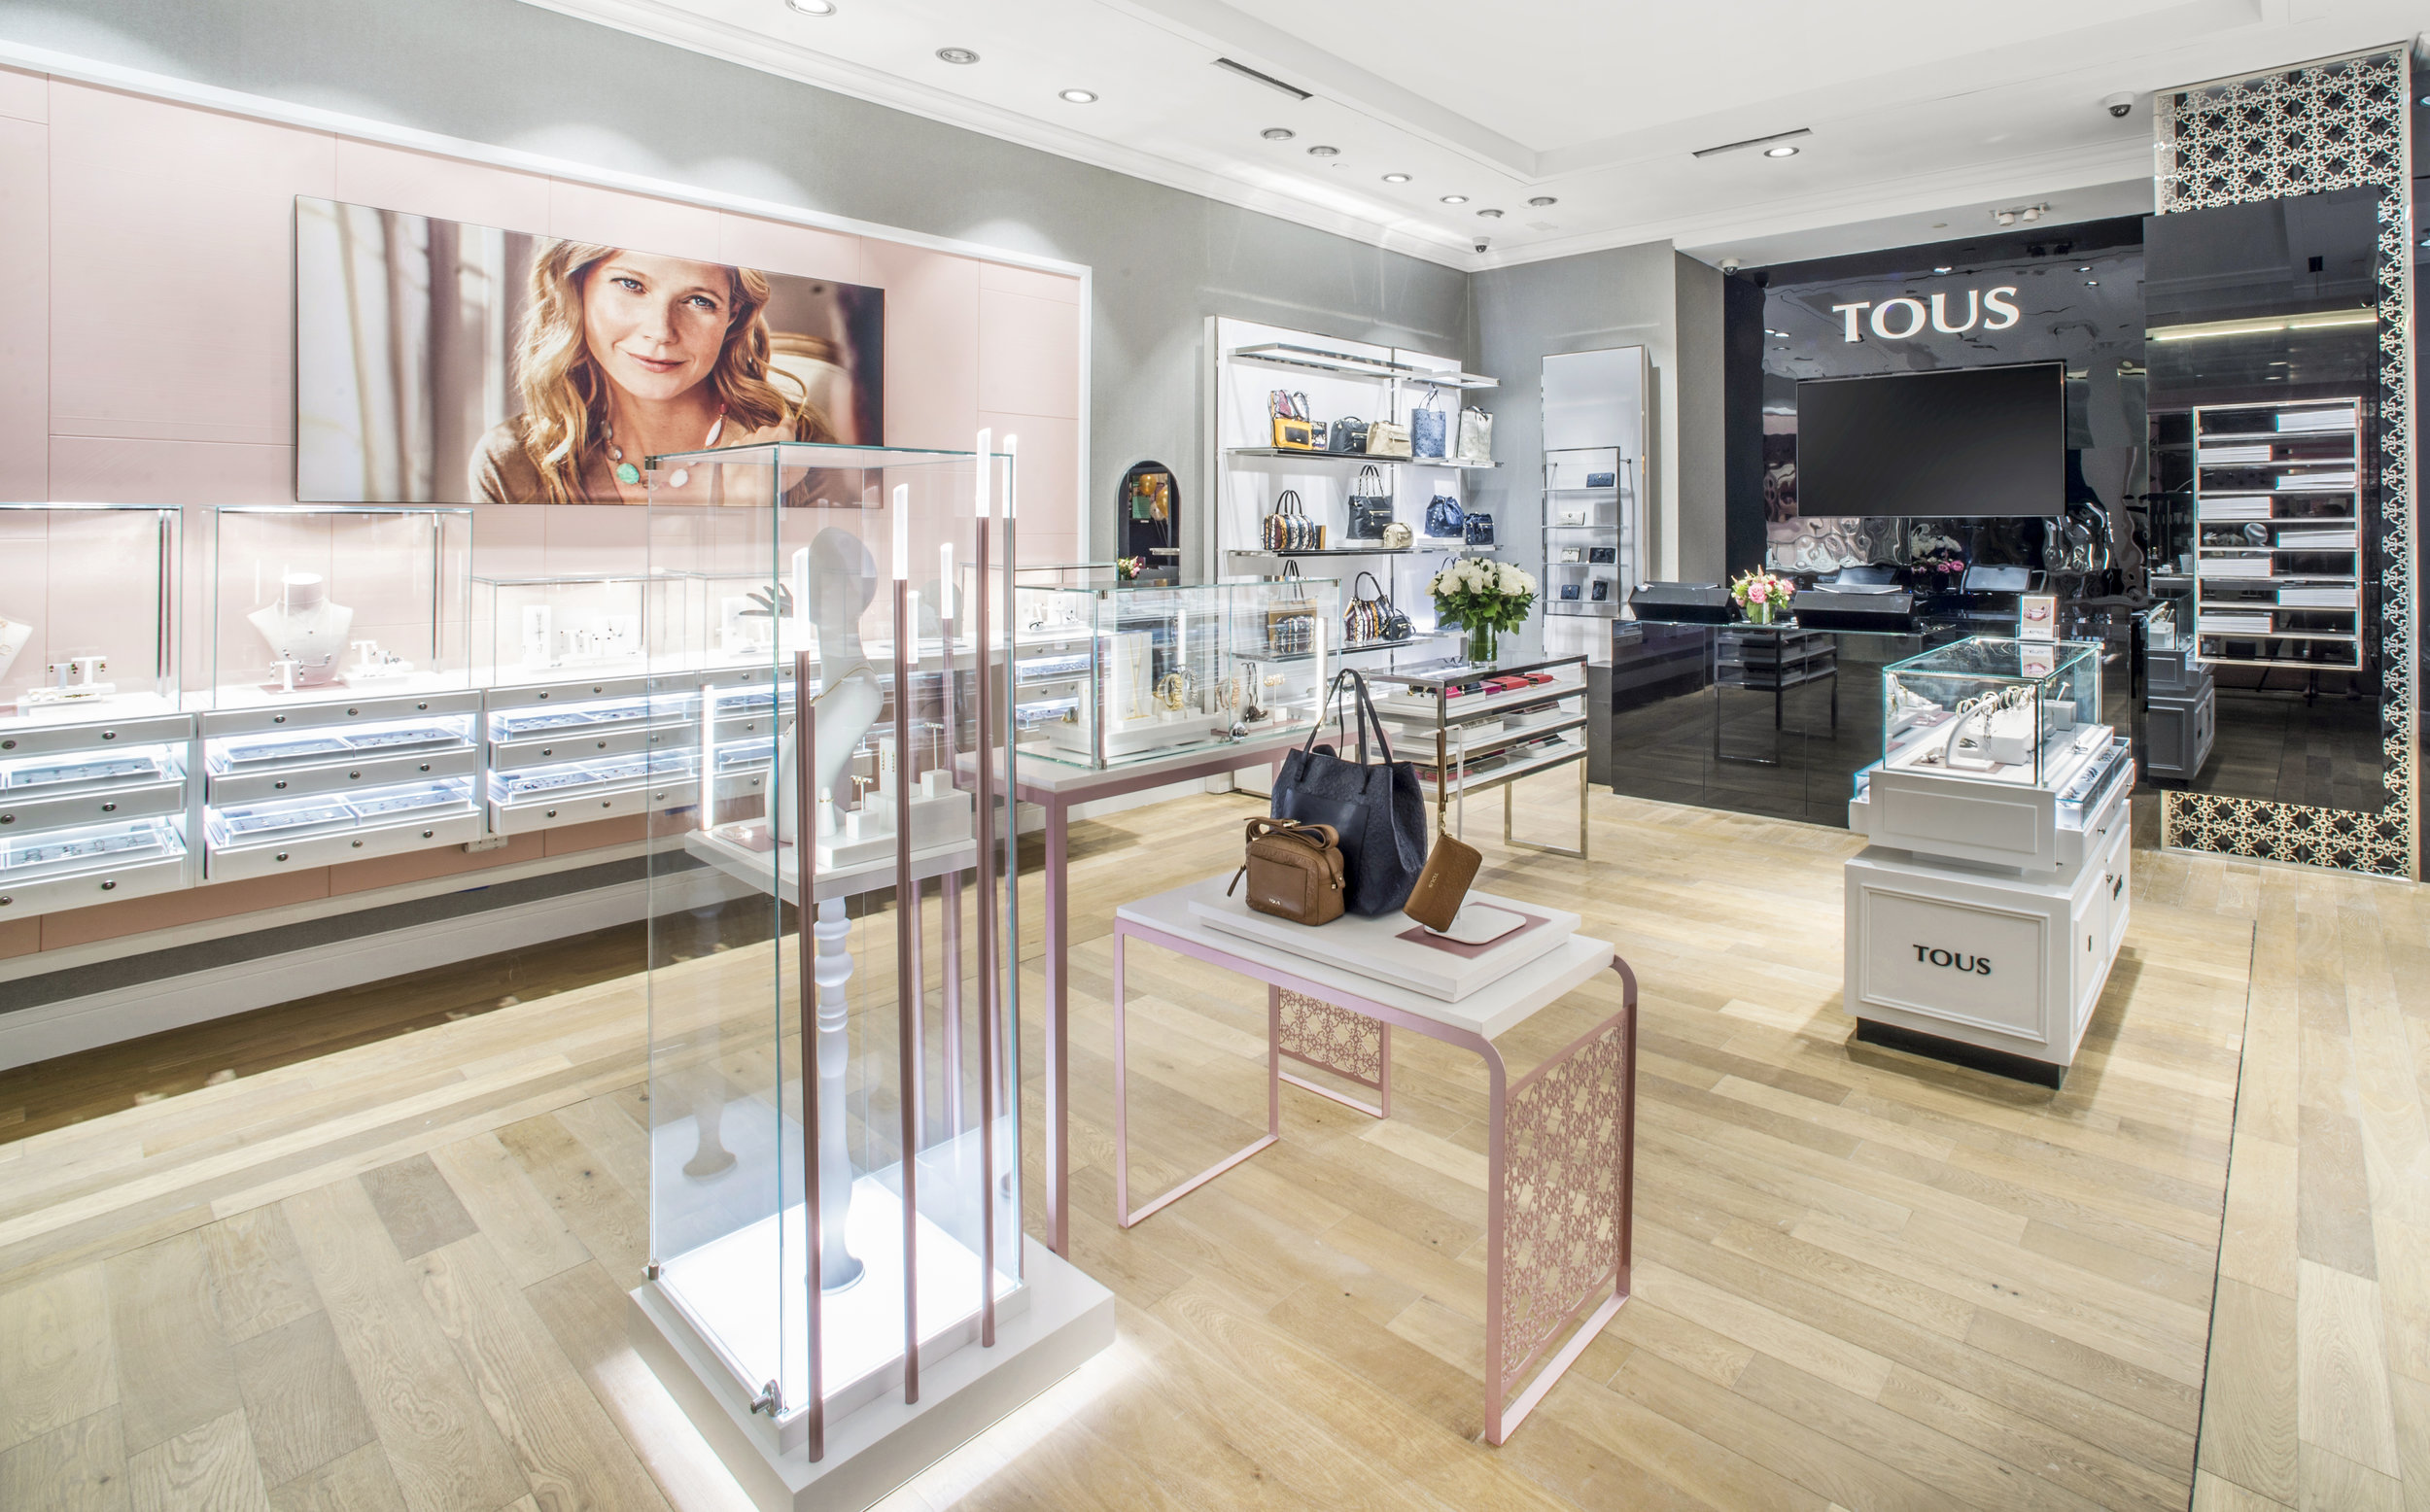 TOUS Westfield Grand Opening 8.19.16 - photo by Andrew Werner.jpg